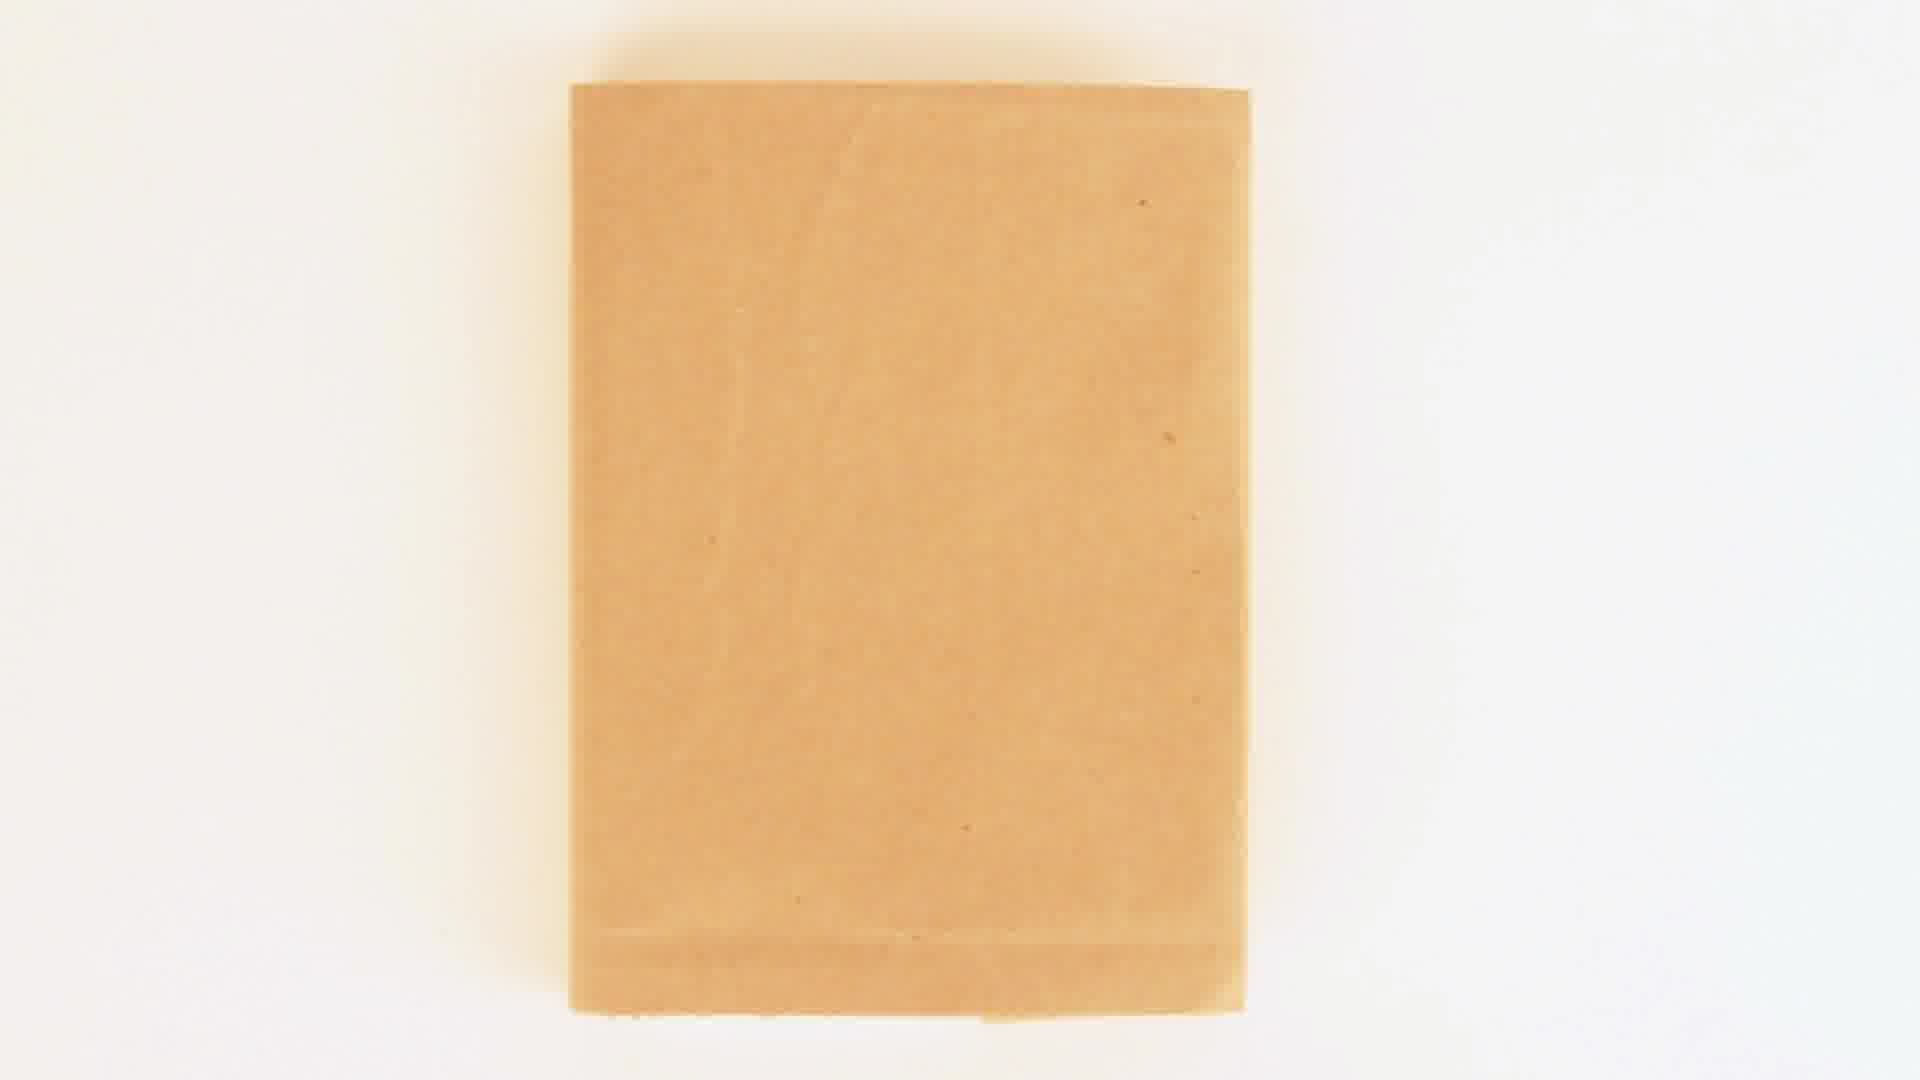 How To Make A Book Cover Out Of A Paper Bag ~ Create a paper bag book cover pinterest paper bag book cover